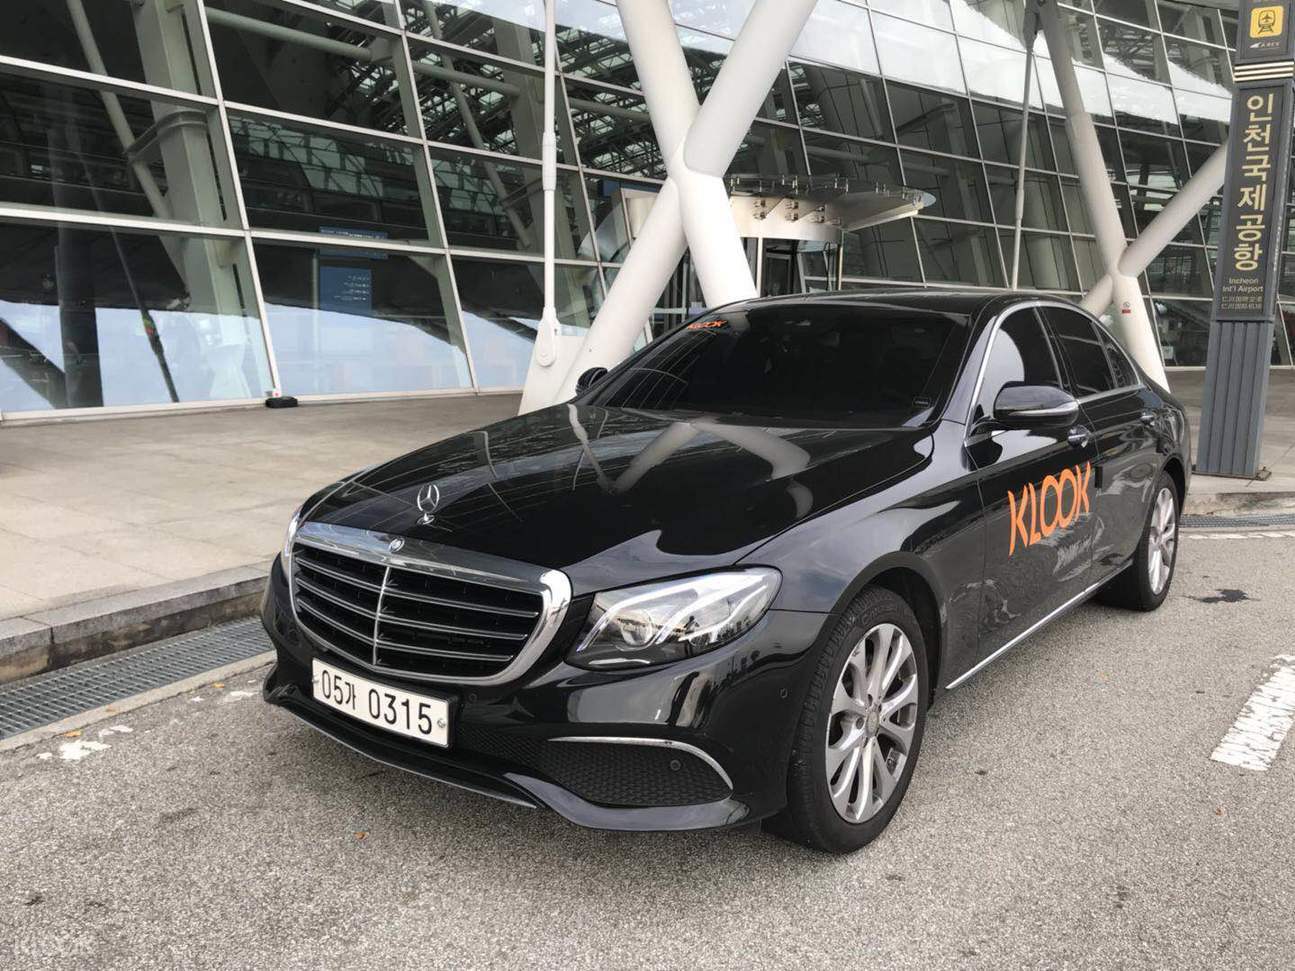 Luxury Incheon Airport Transfers (ICN) for Seoul